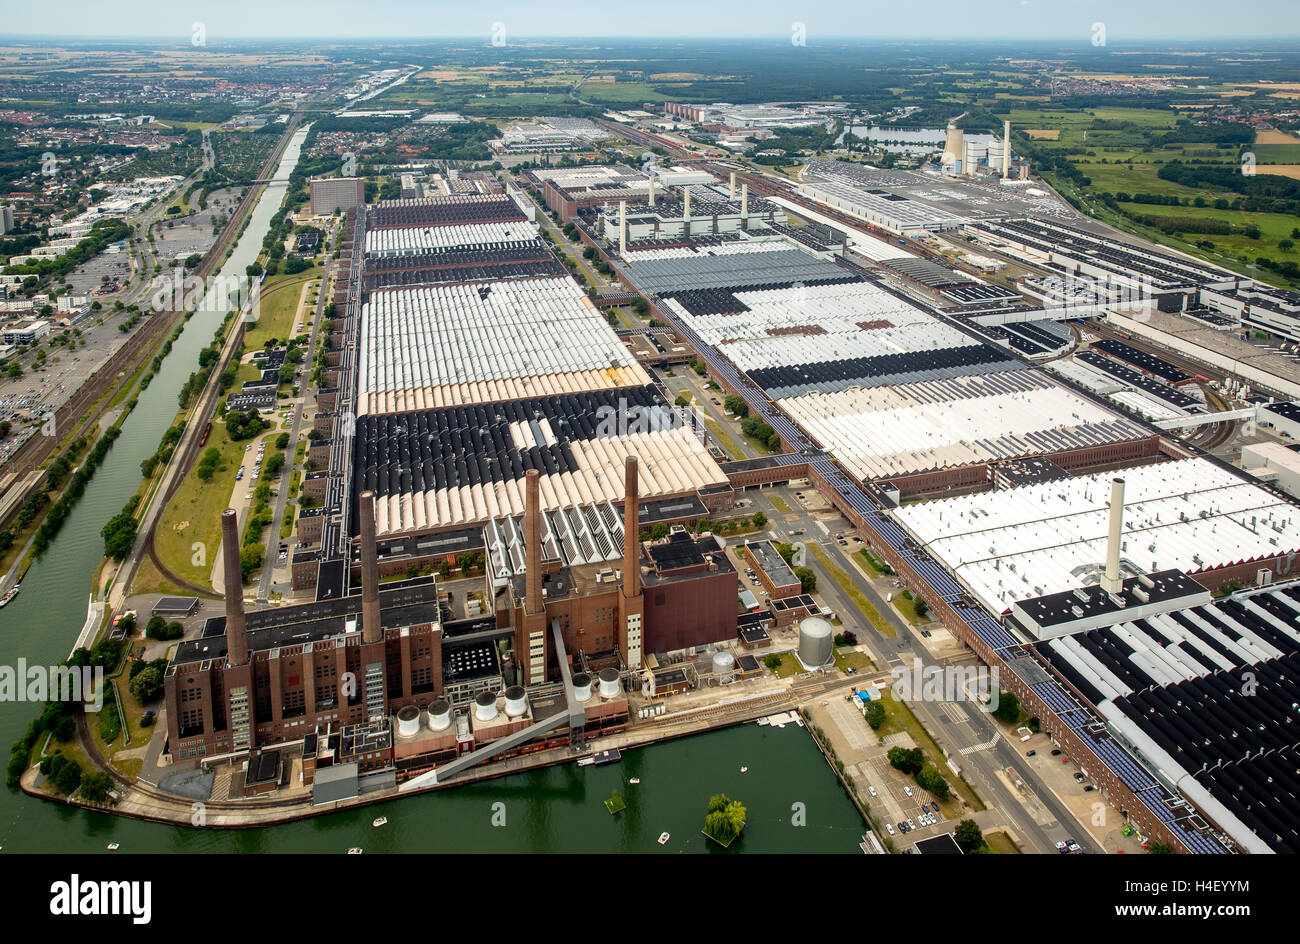 Aerial view, Volkswagen factory with heating plant VW Südstraße, Lower Saxony, Germany Stock Photo